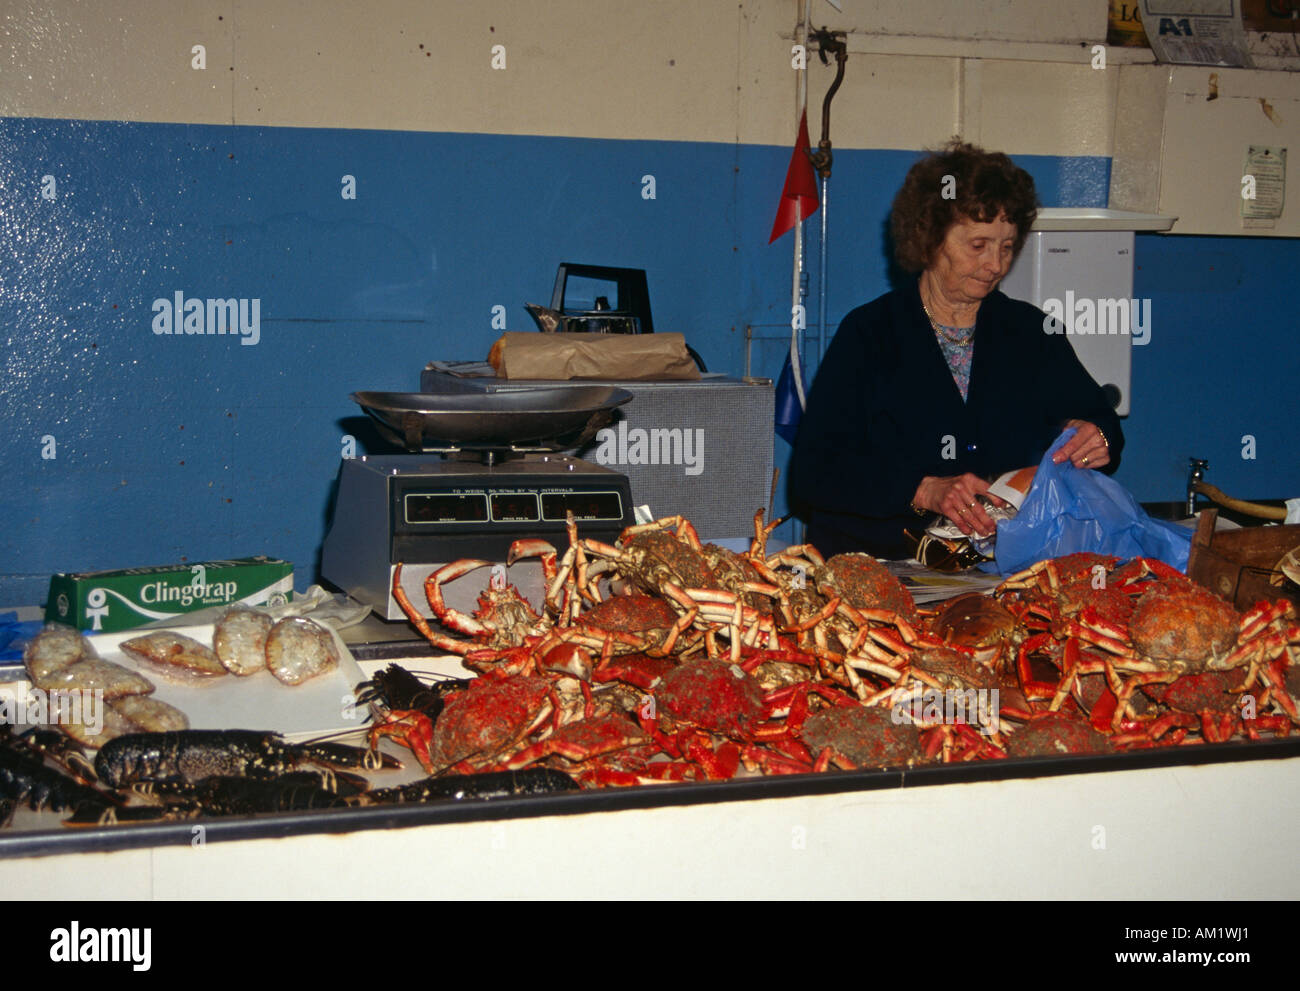 Lady fishmonger selling crabs and lobsters in the Fish Market, St Peter Port, Guernsey, Channel Islands - Stock Image